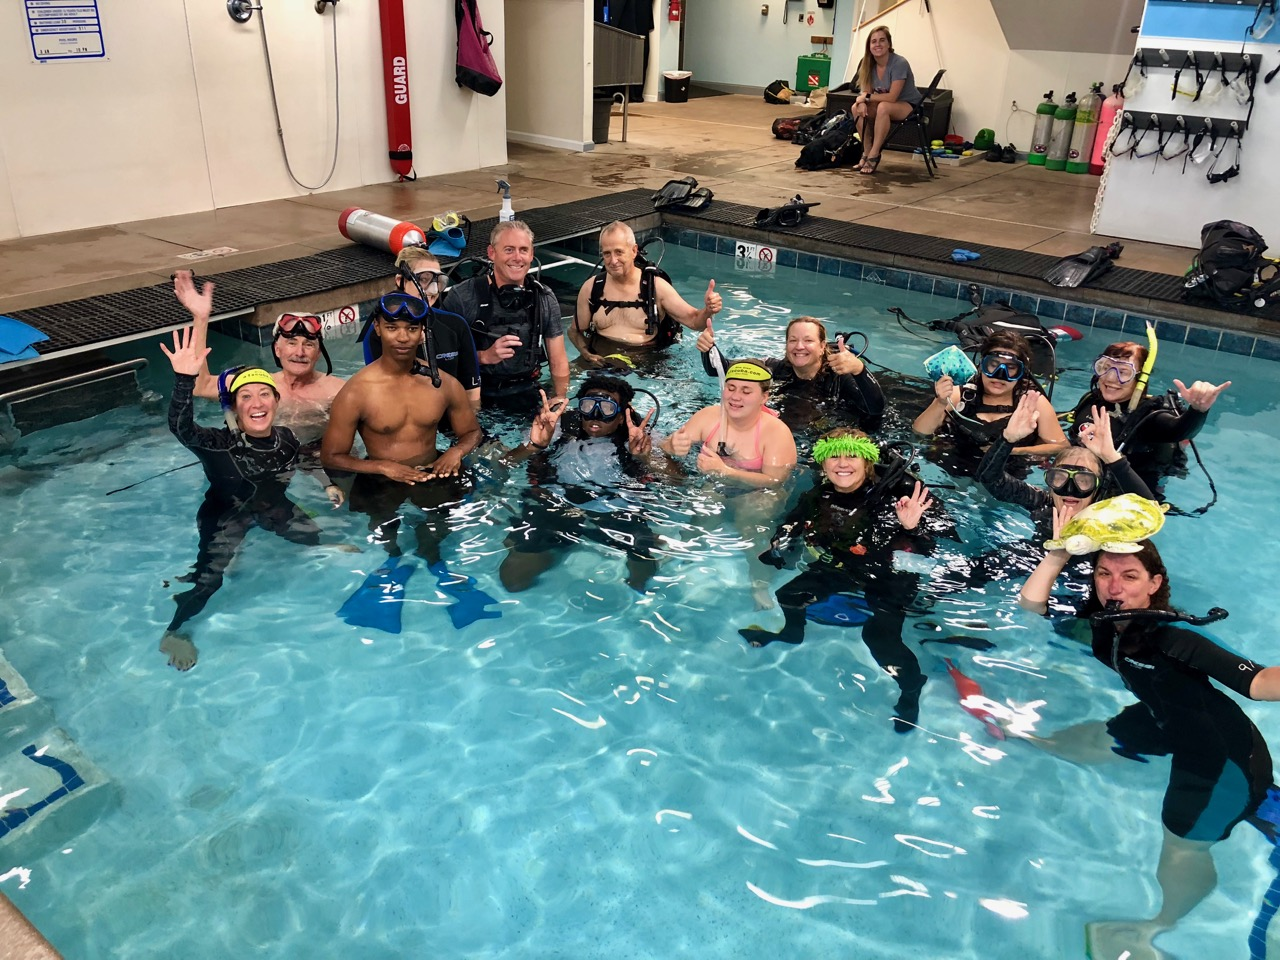 Group of 14 in Scuba Gear in the corner of the pool smile and wave